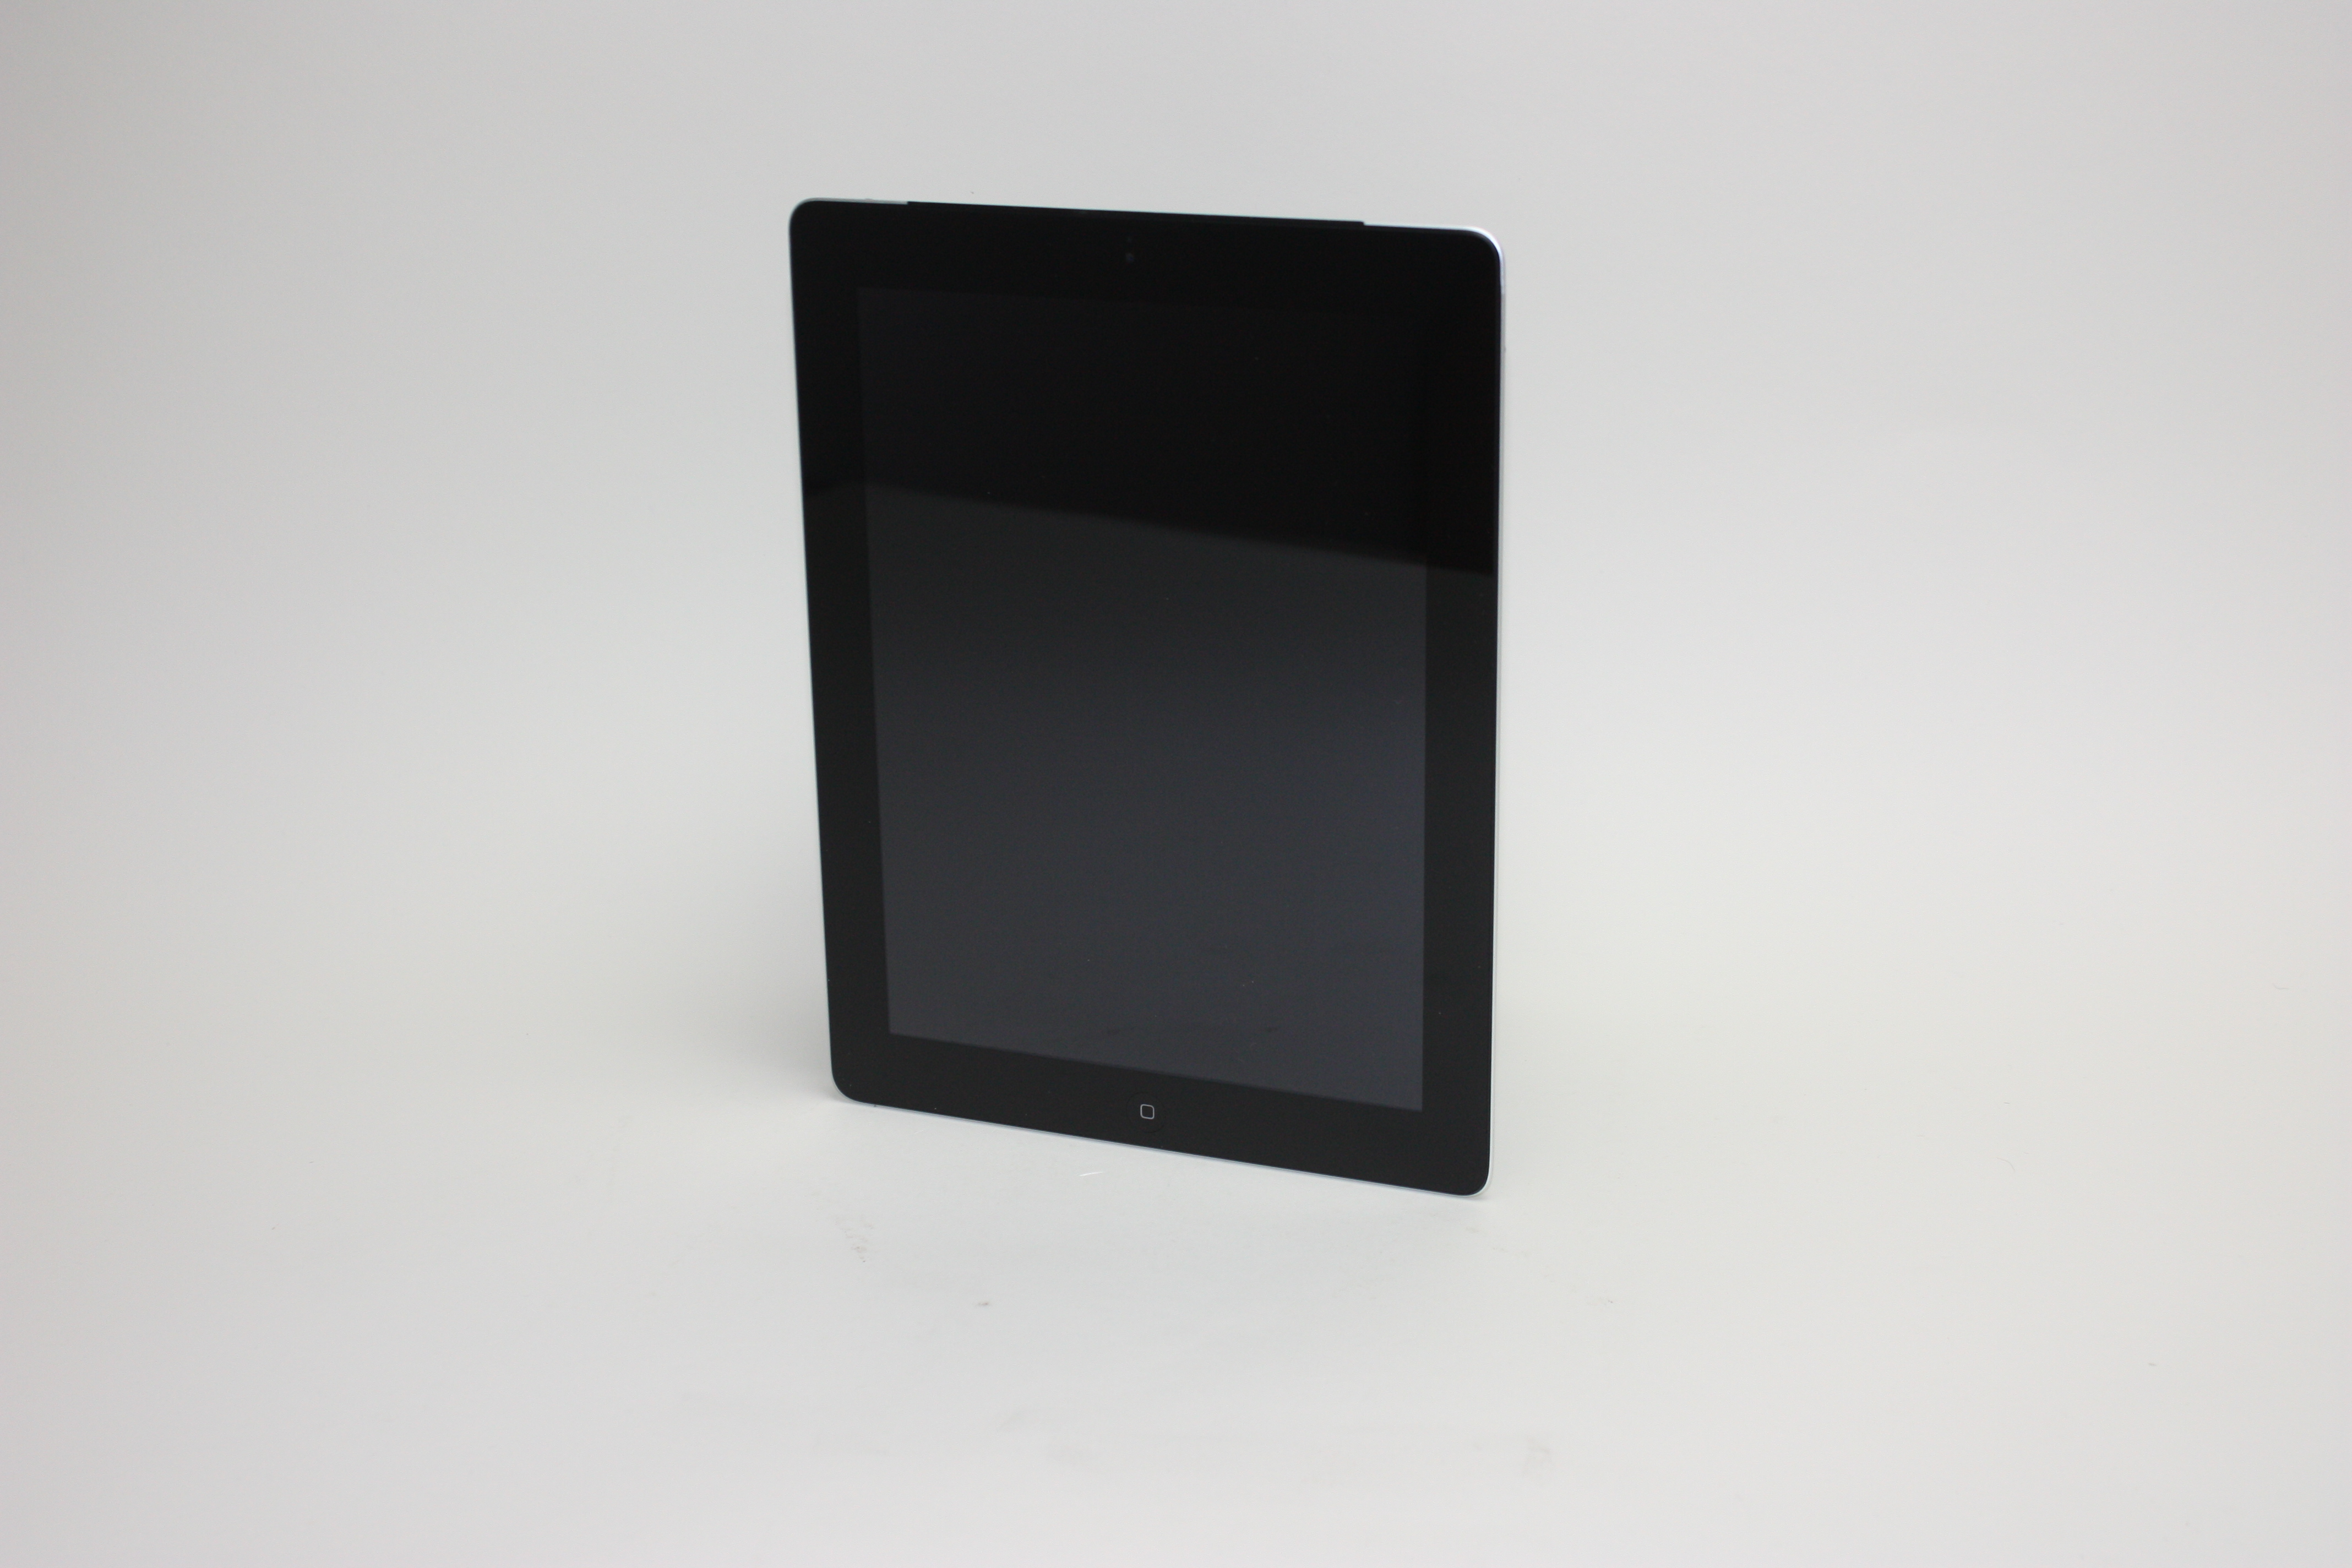 iPad 4th gen Cellular, 32 GB, Black, Product age: 49 months, image 1